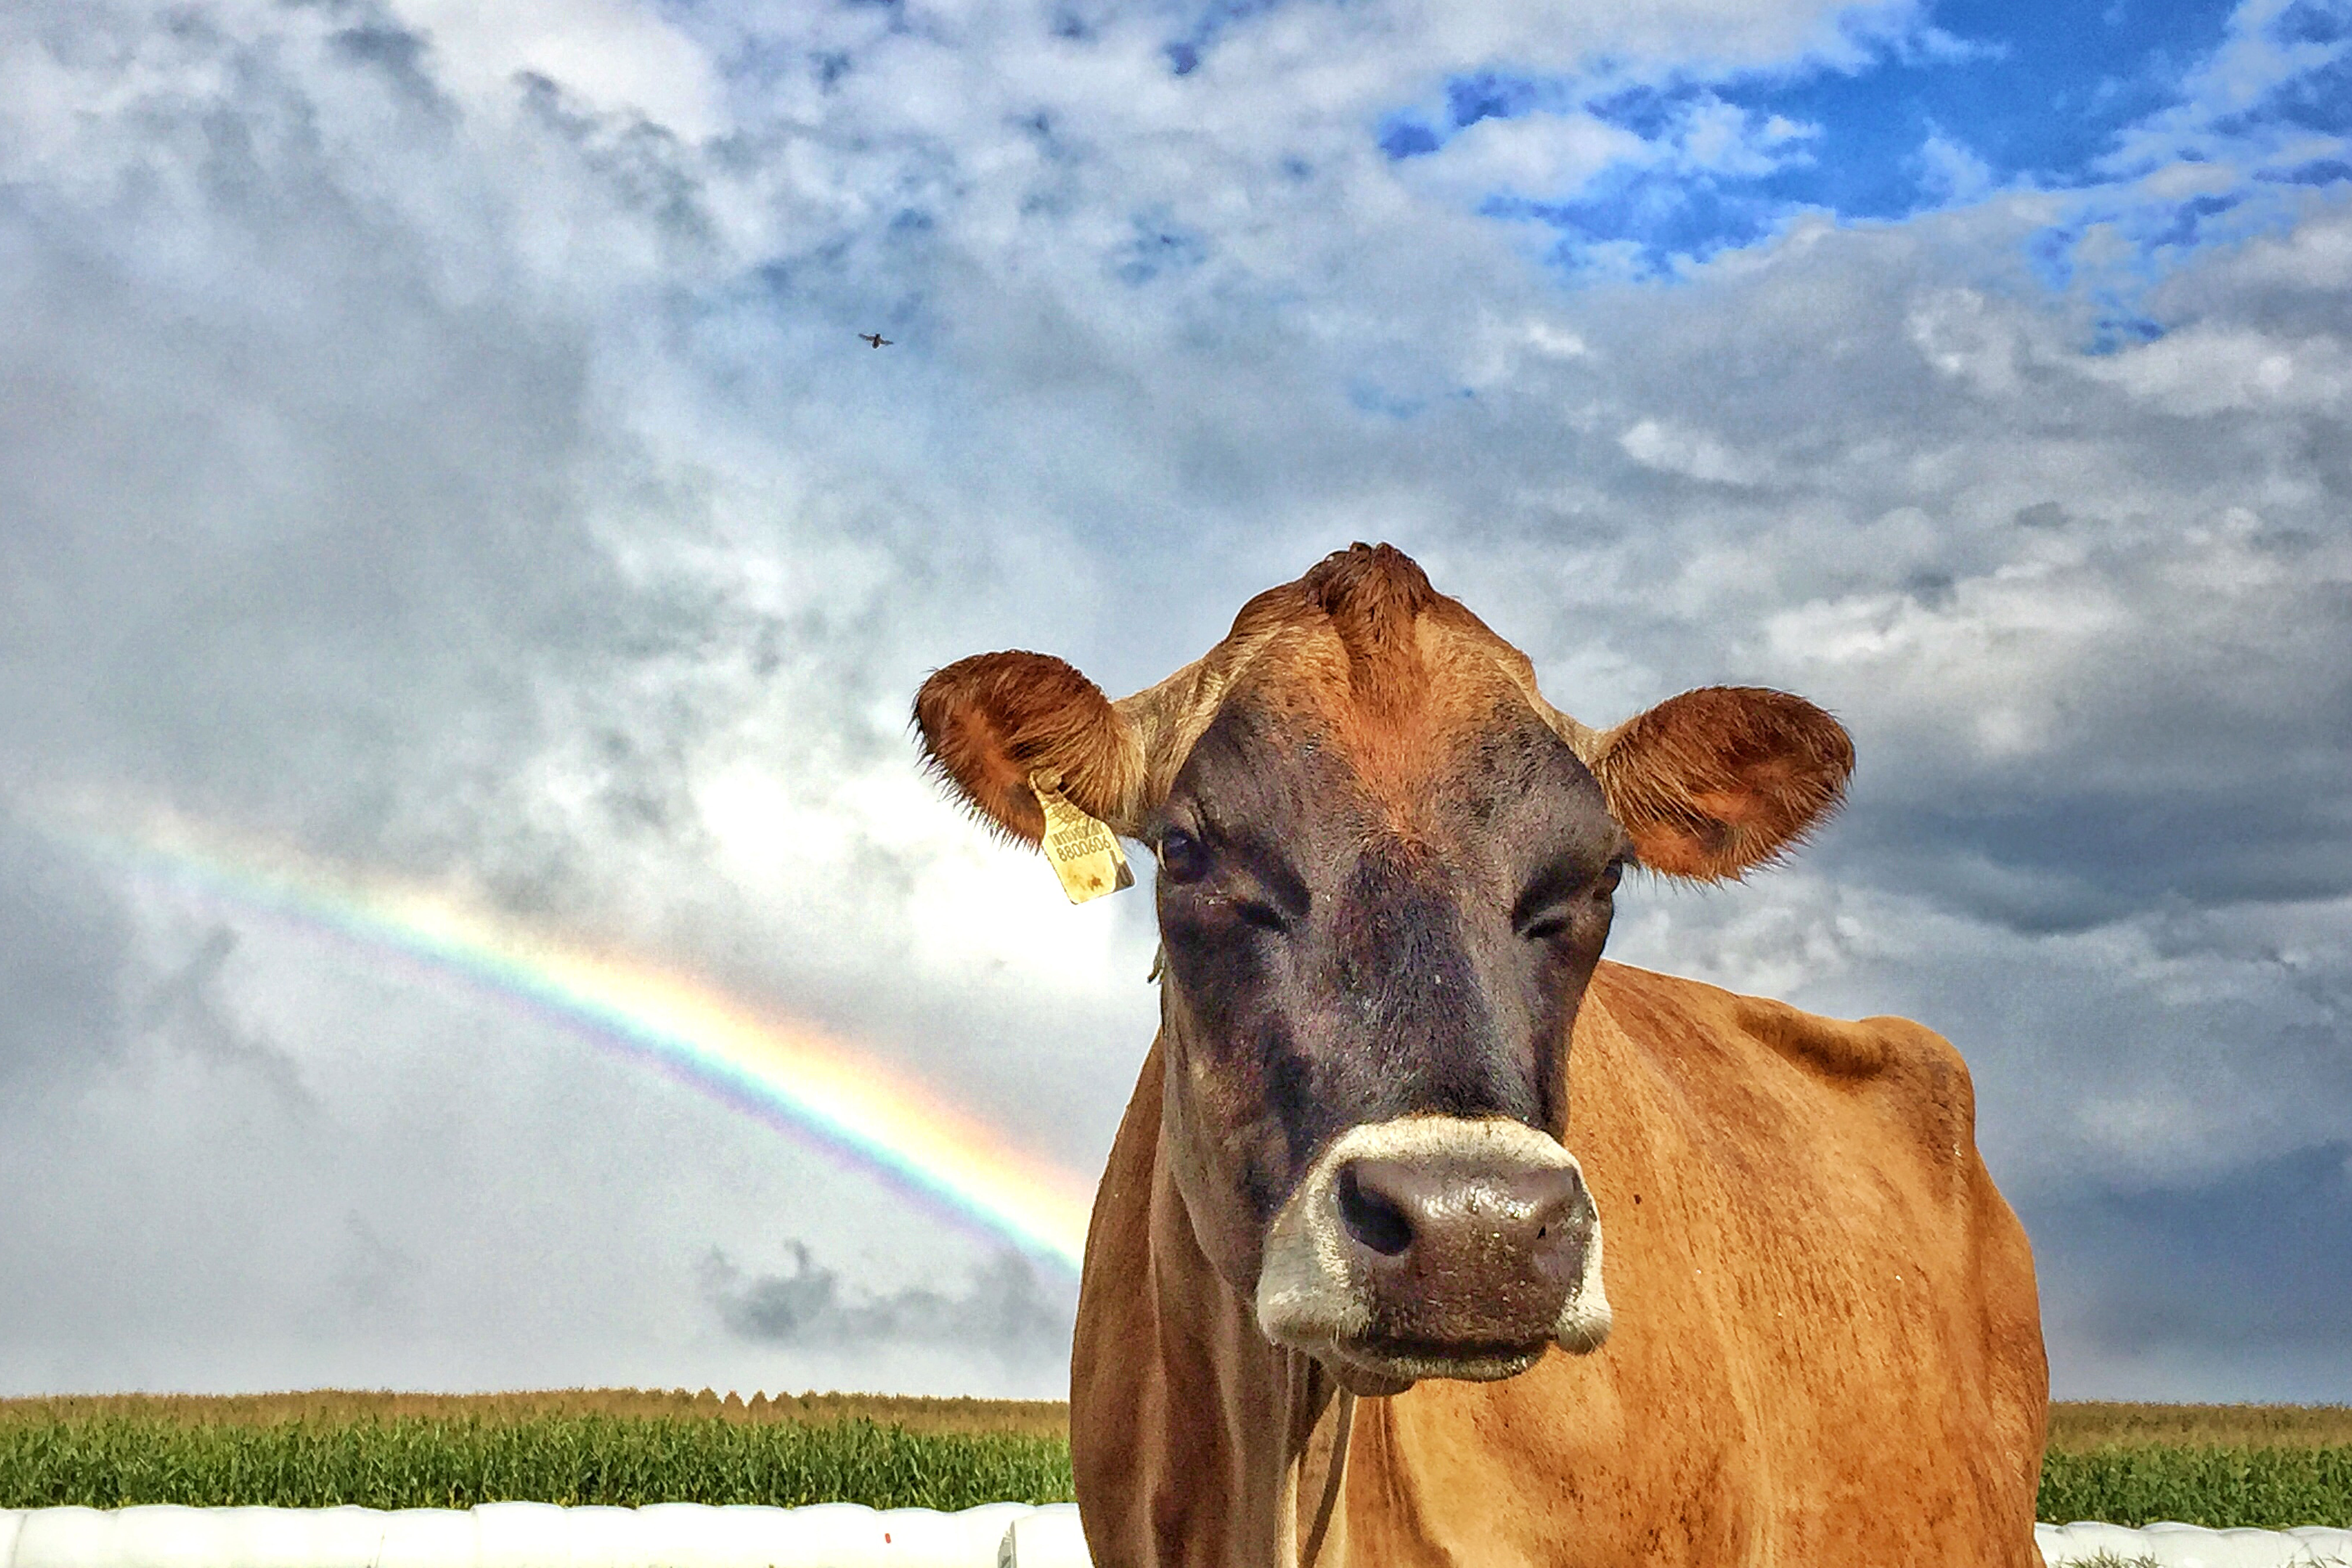 Jersey cow with clouds and rainbow in background